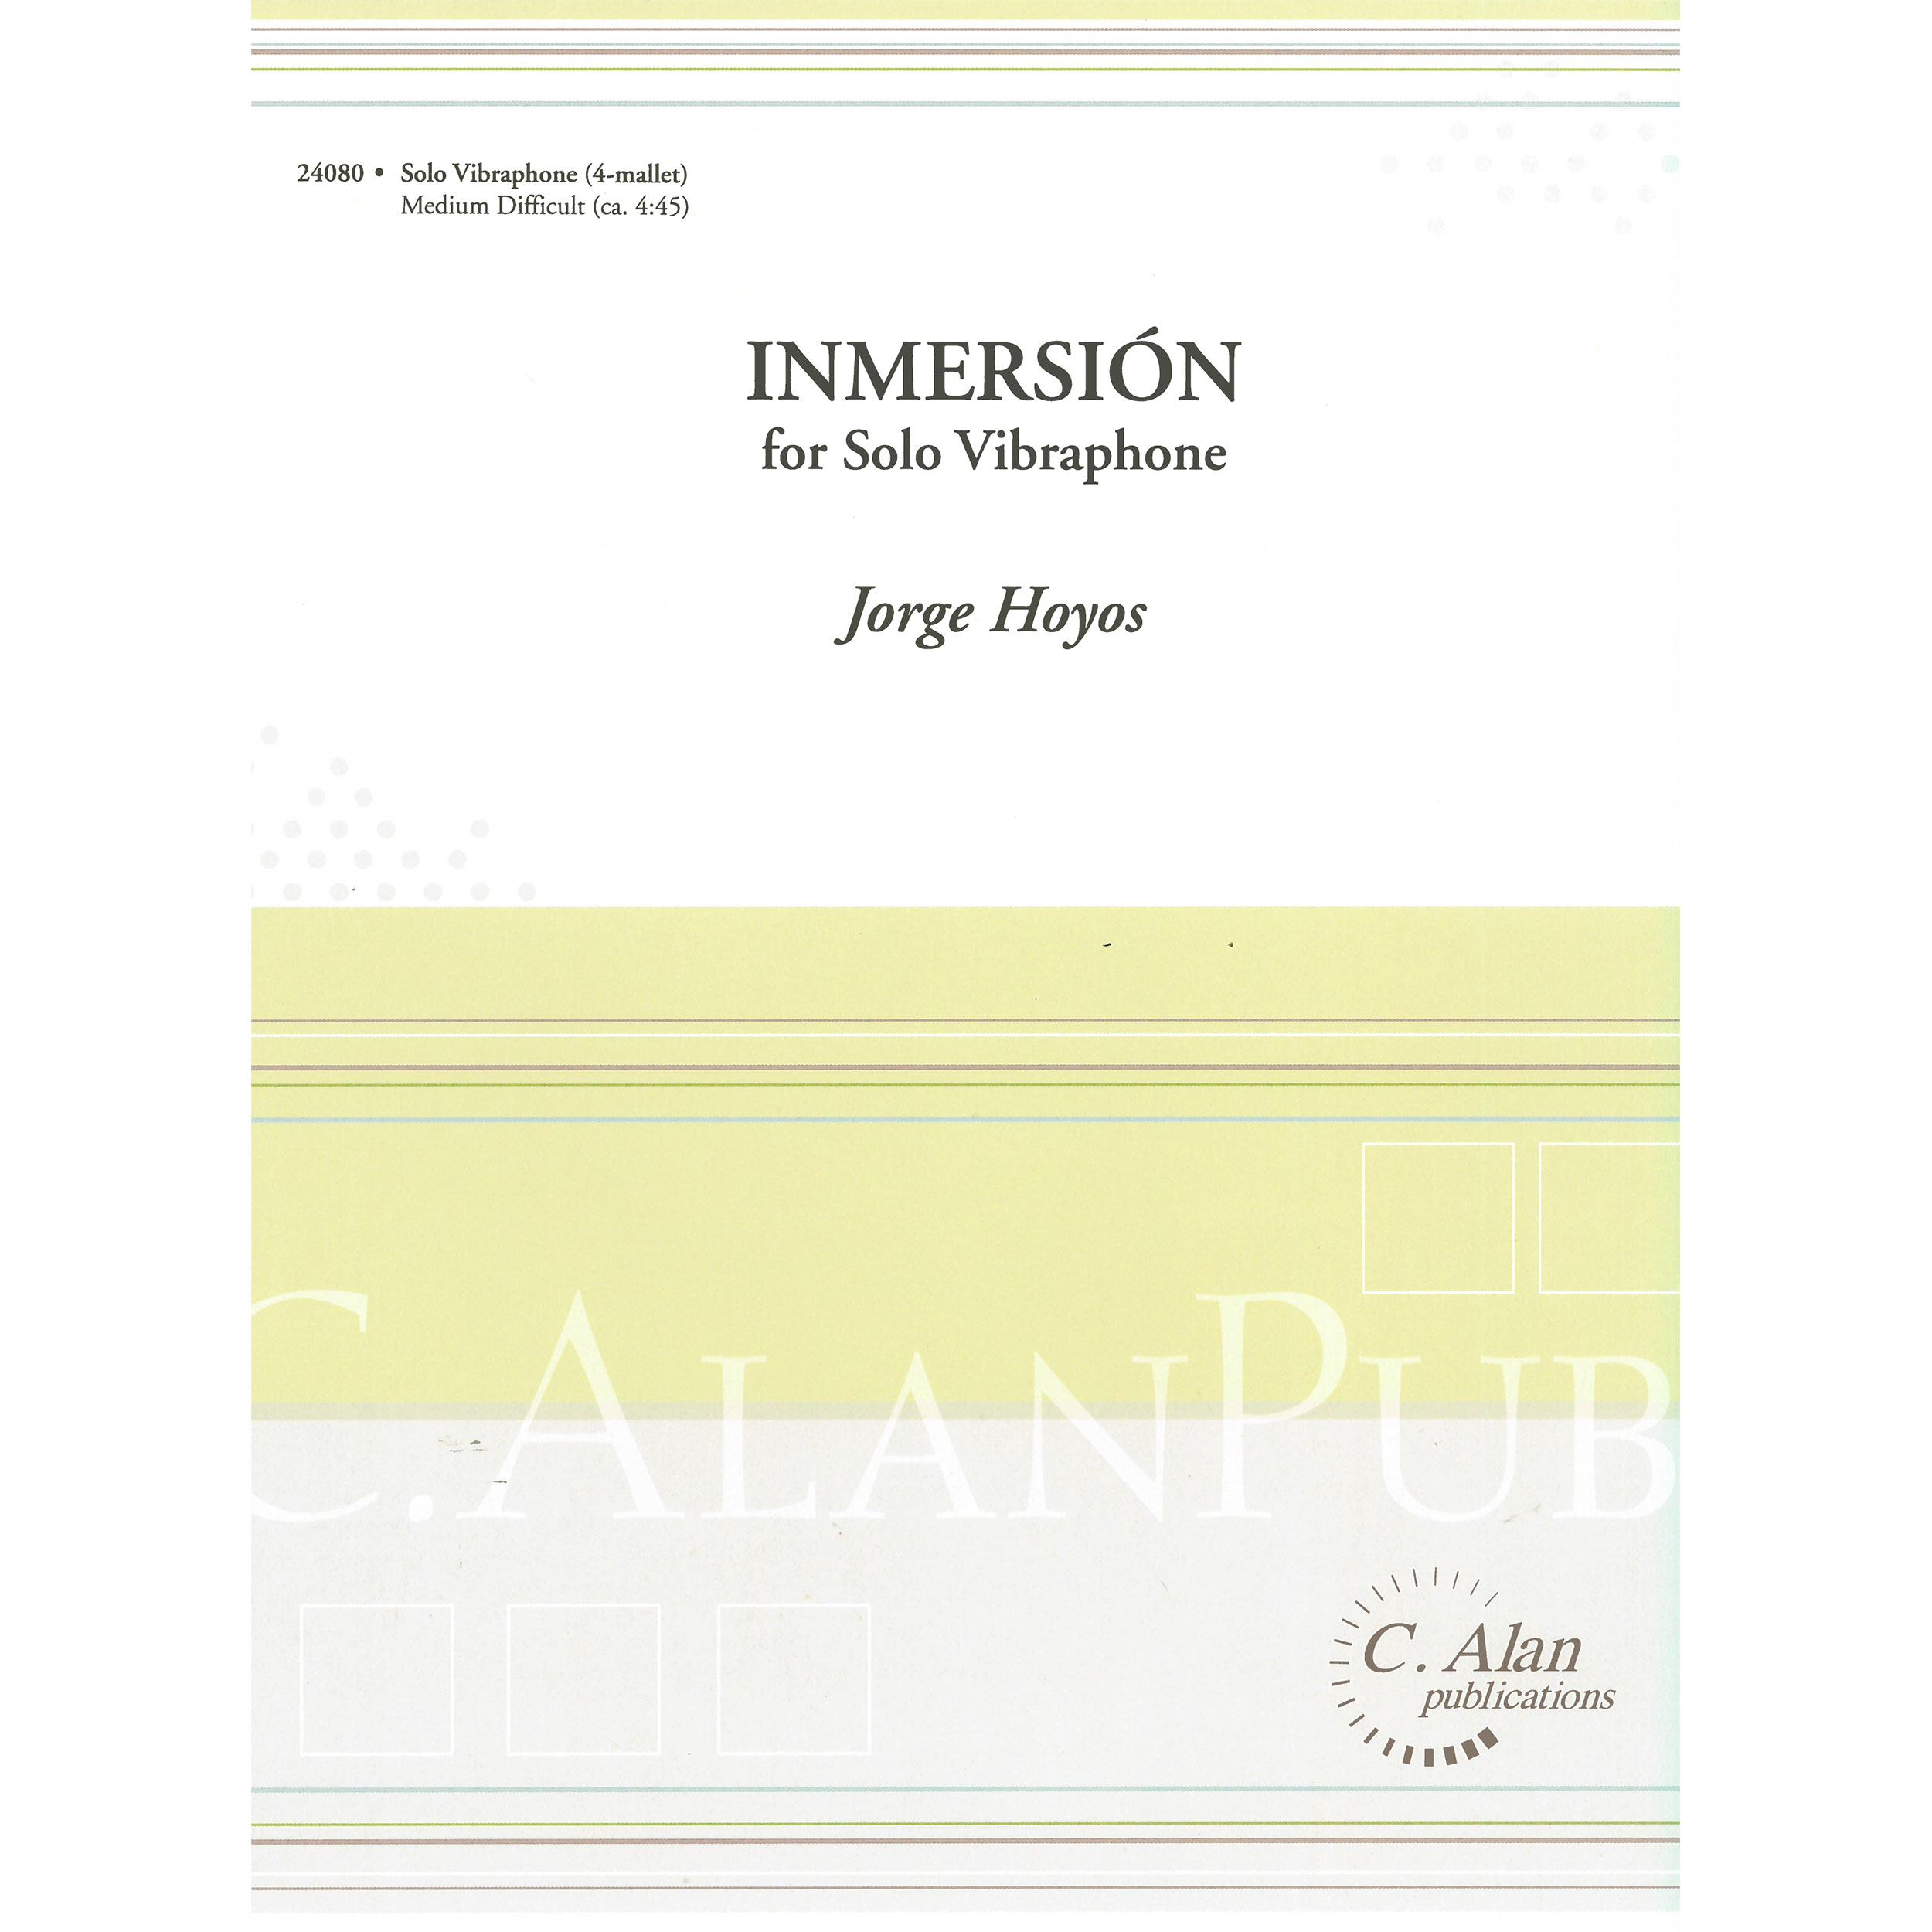 Inmersion by Jorge Hoyos